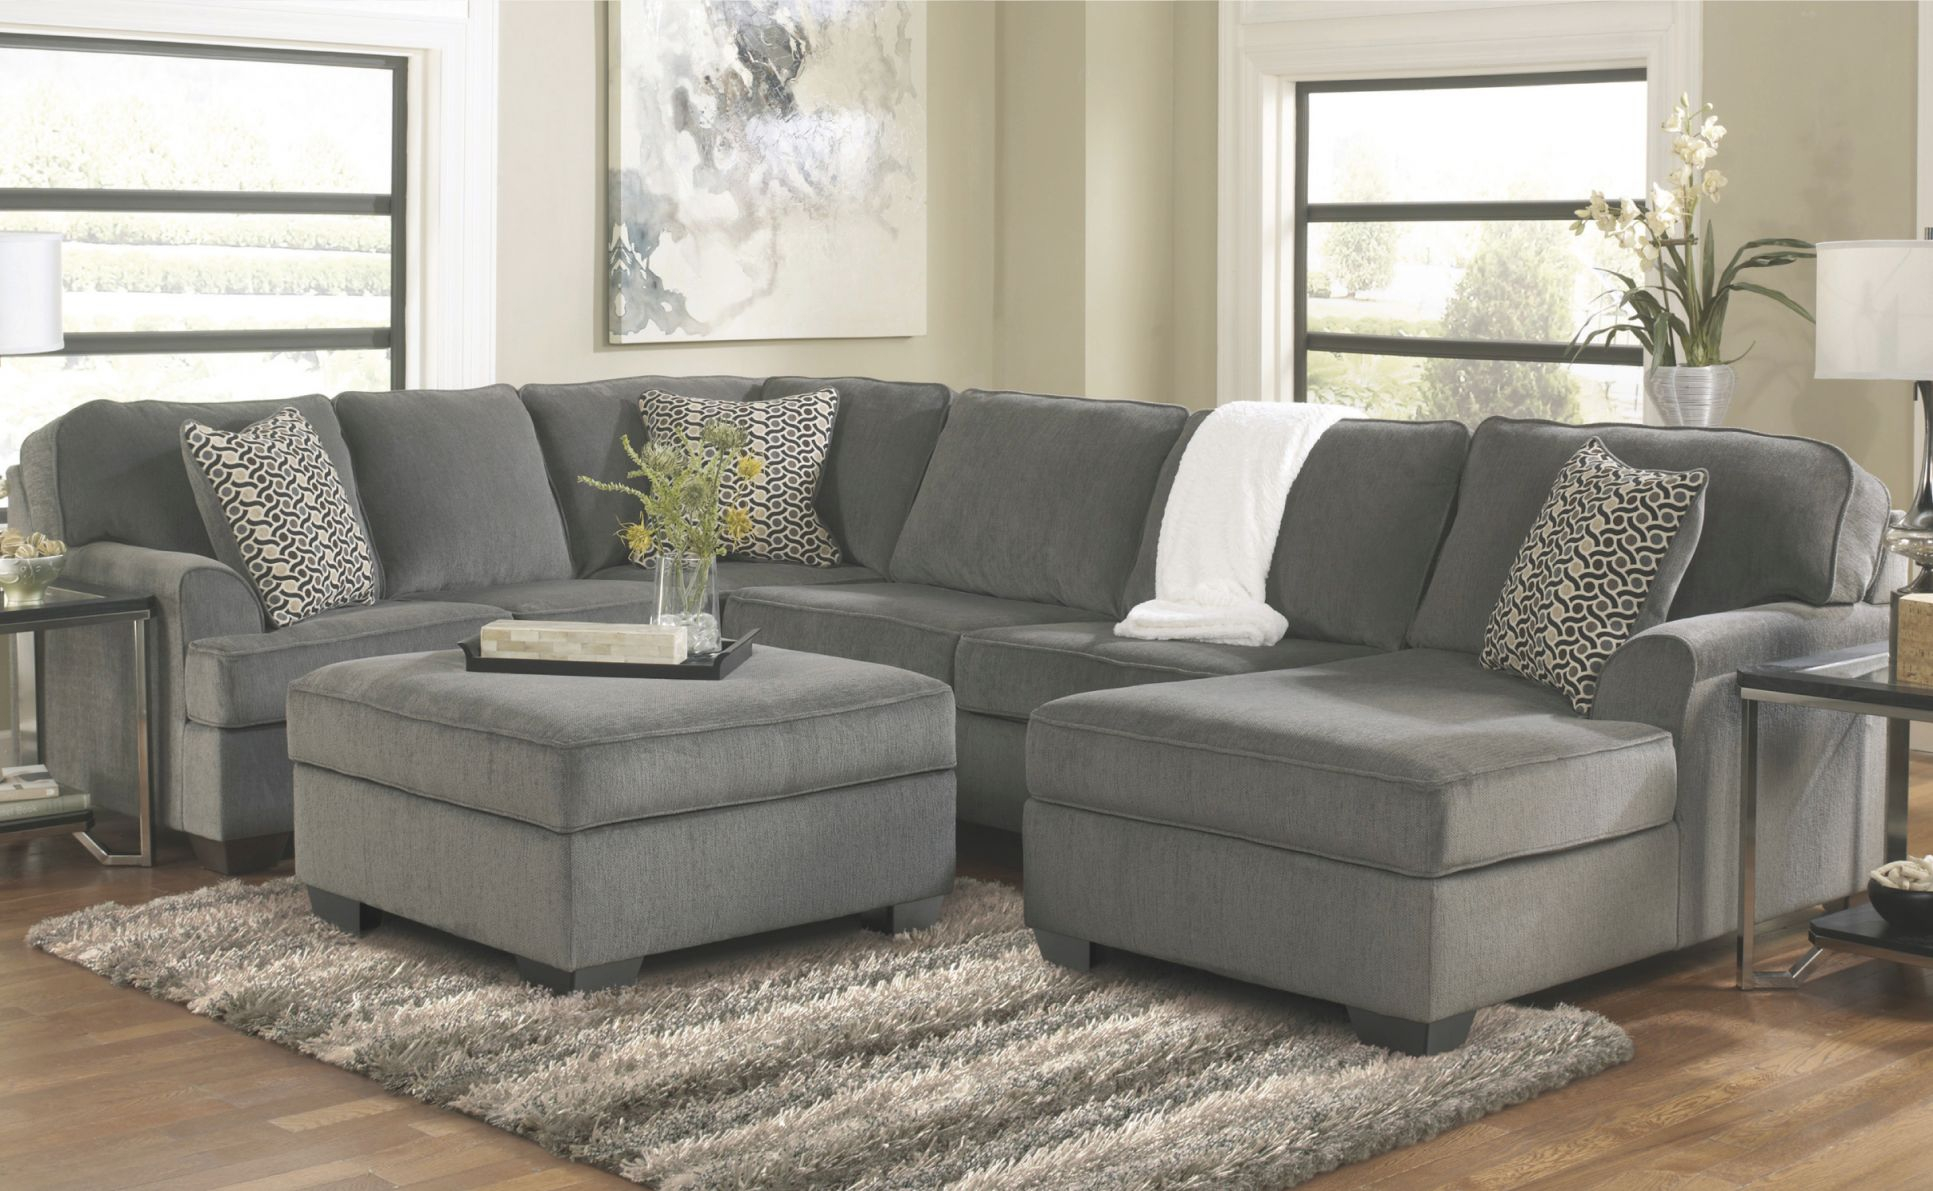 Clearance Furniture In Chicago | Darvin Clearance within Elegant Living Room Furniture Clearance